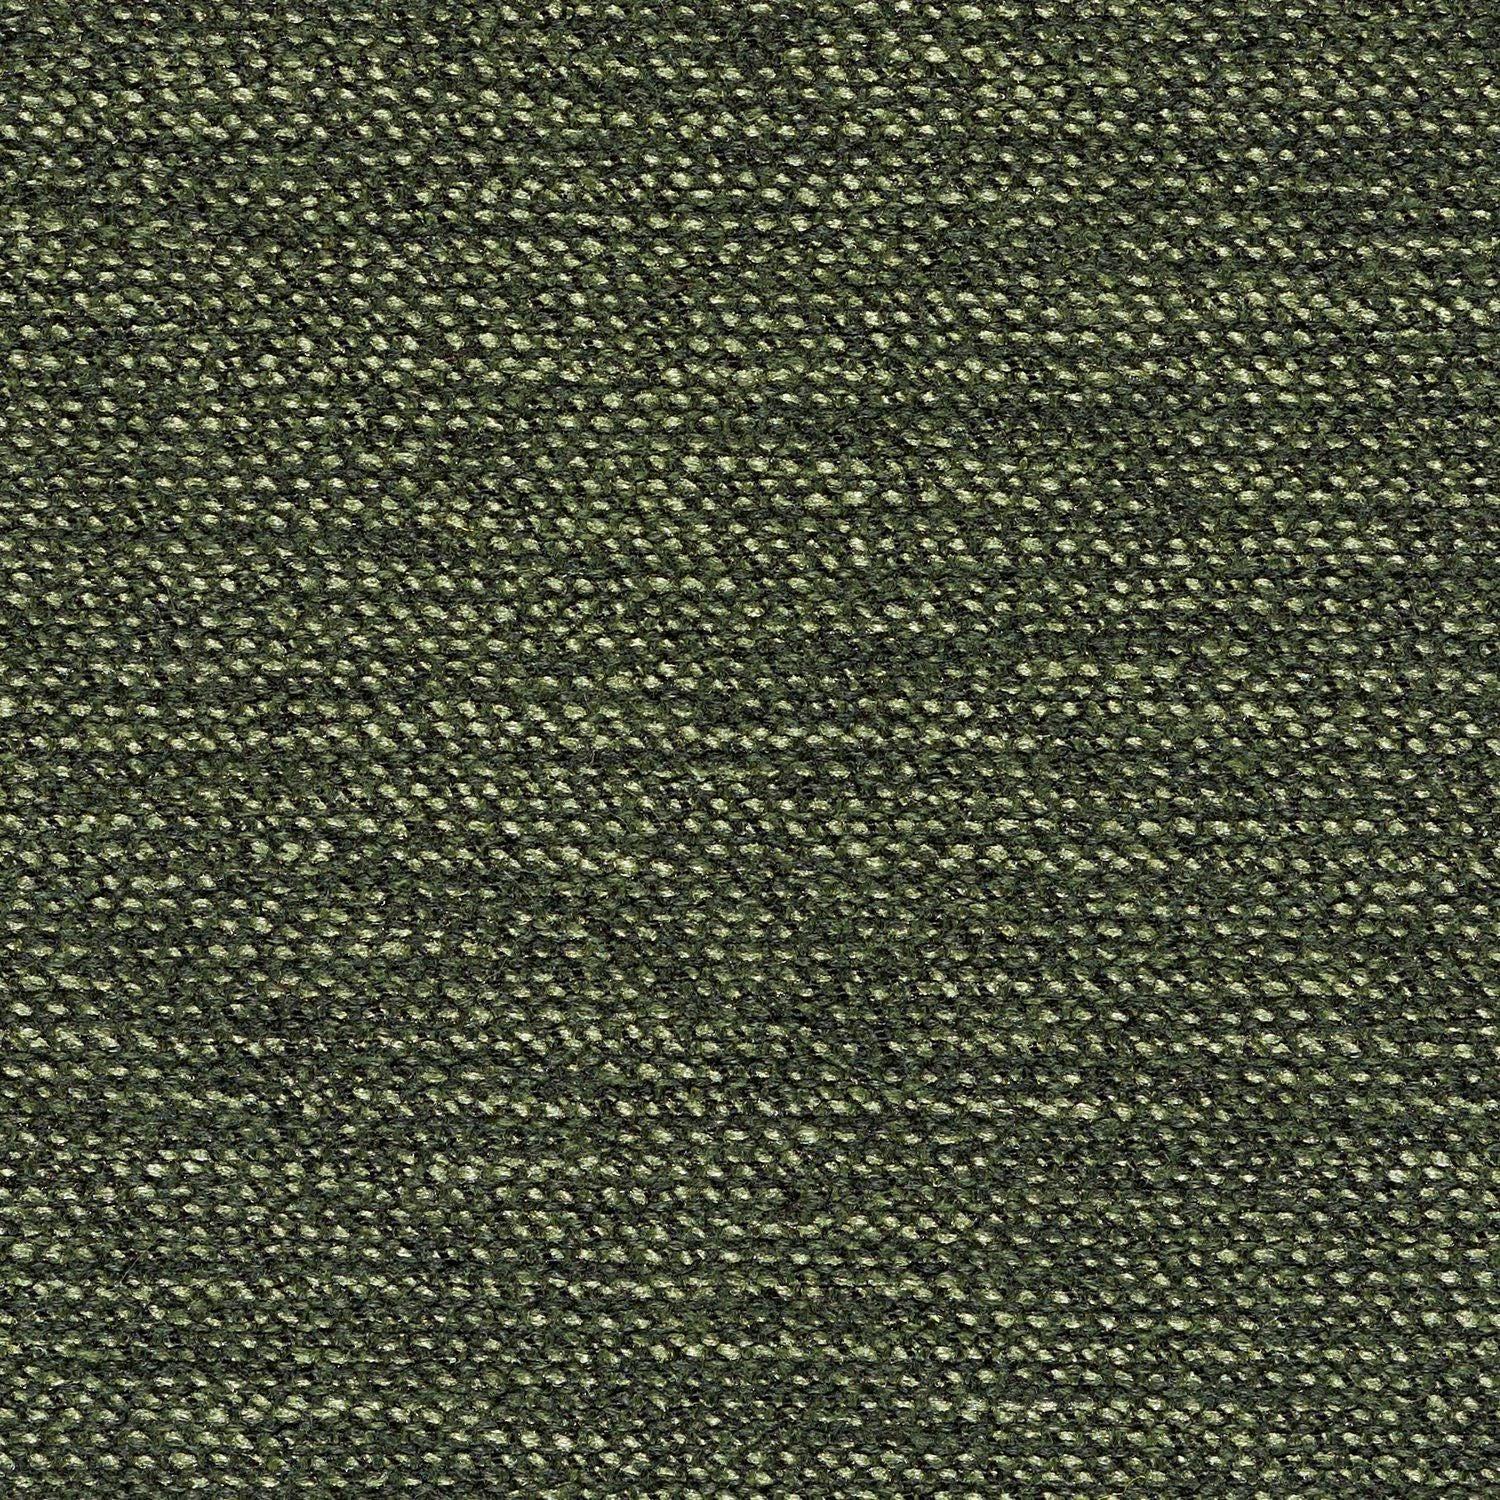 Superspun - Creel - 4064 - 16